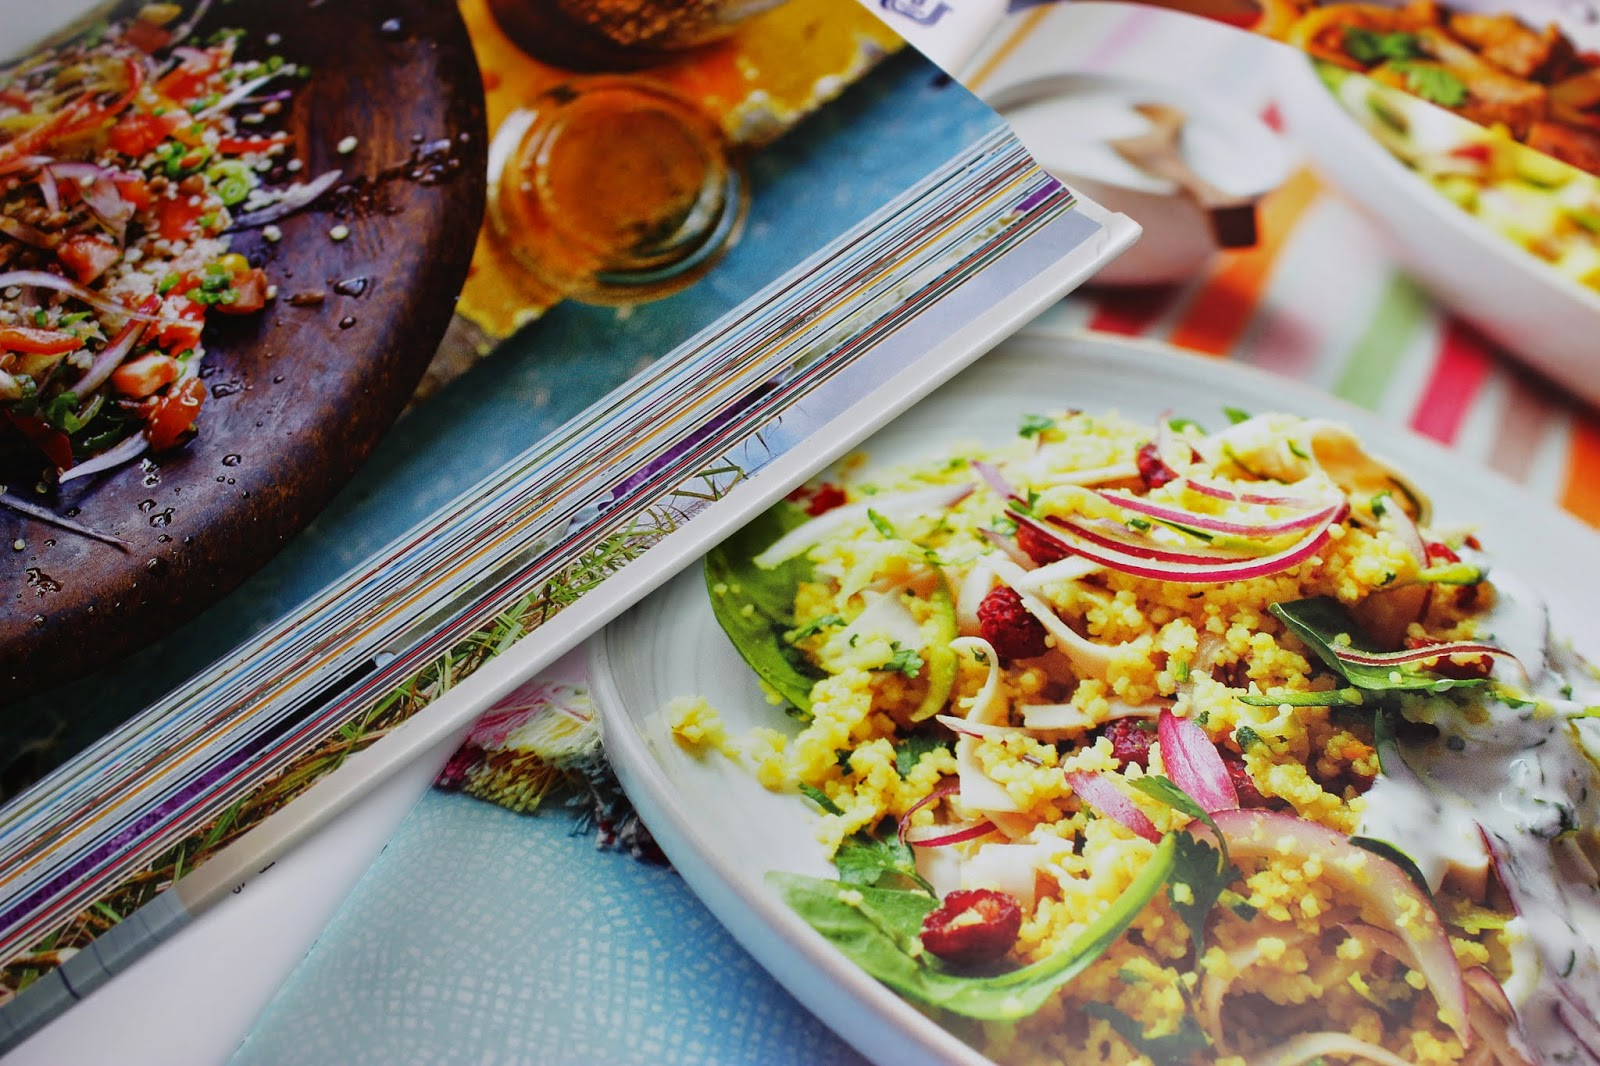 Healthy cookbooks with tasty recipes